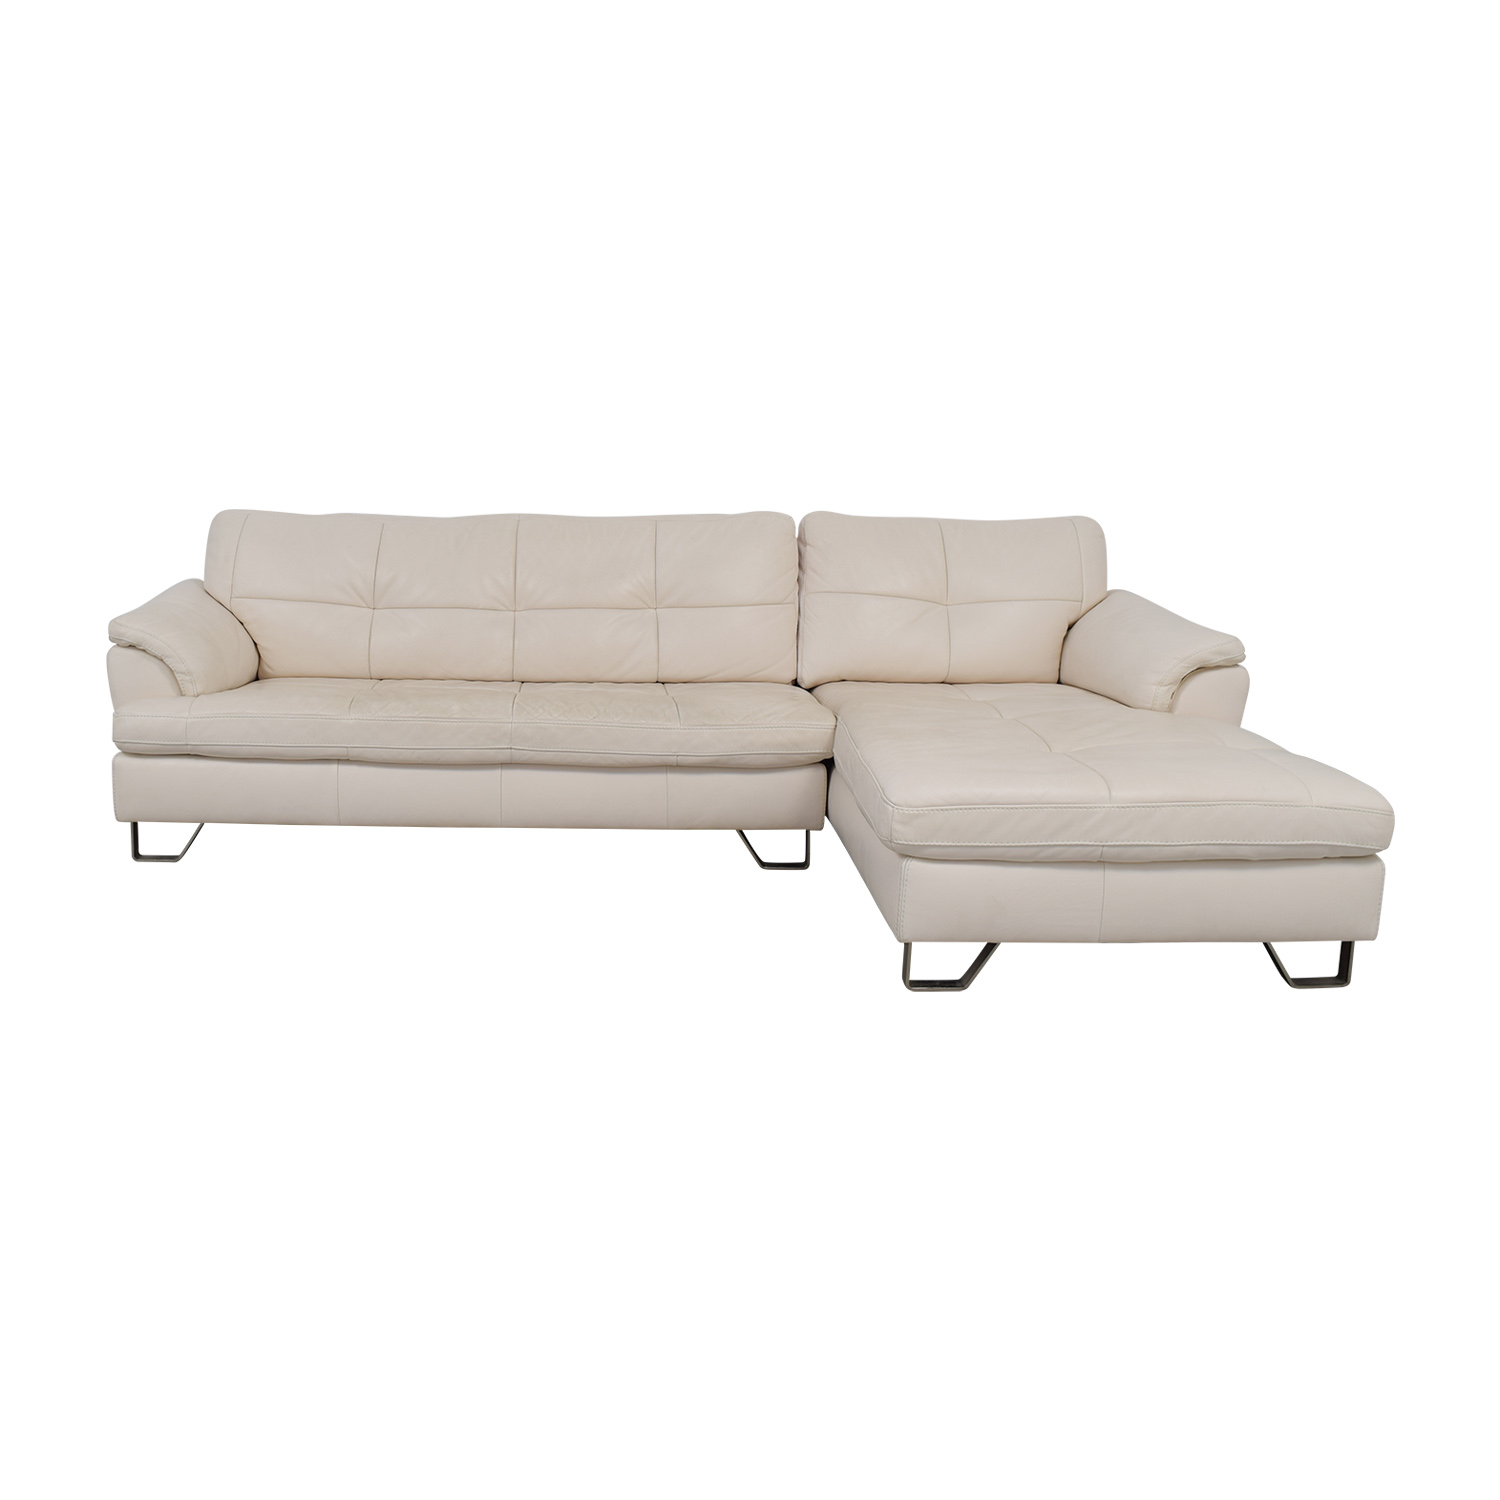 88 off ashley furniture ashley furniture white leather chaise sectional sofas